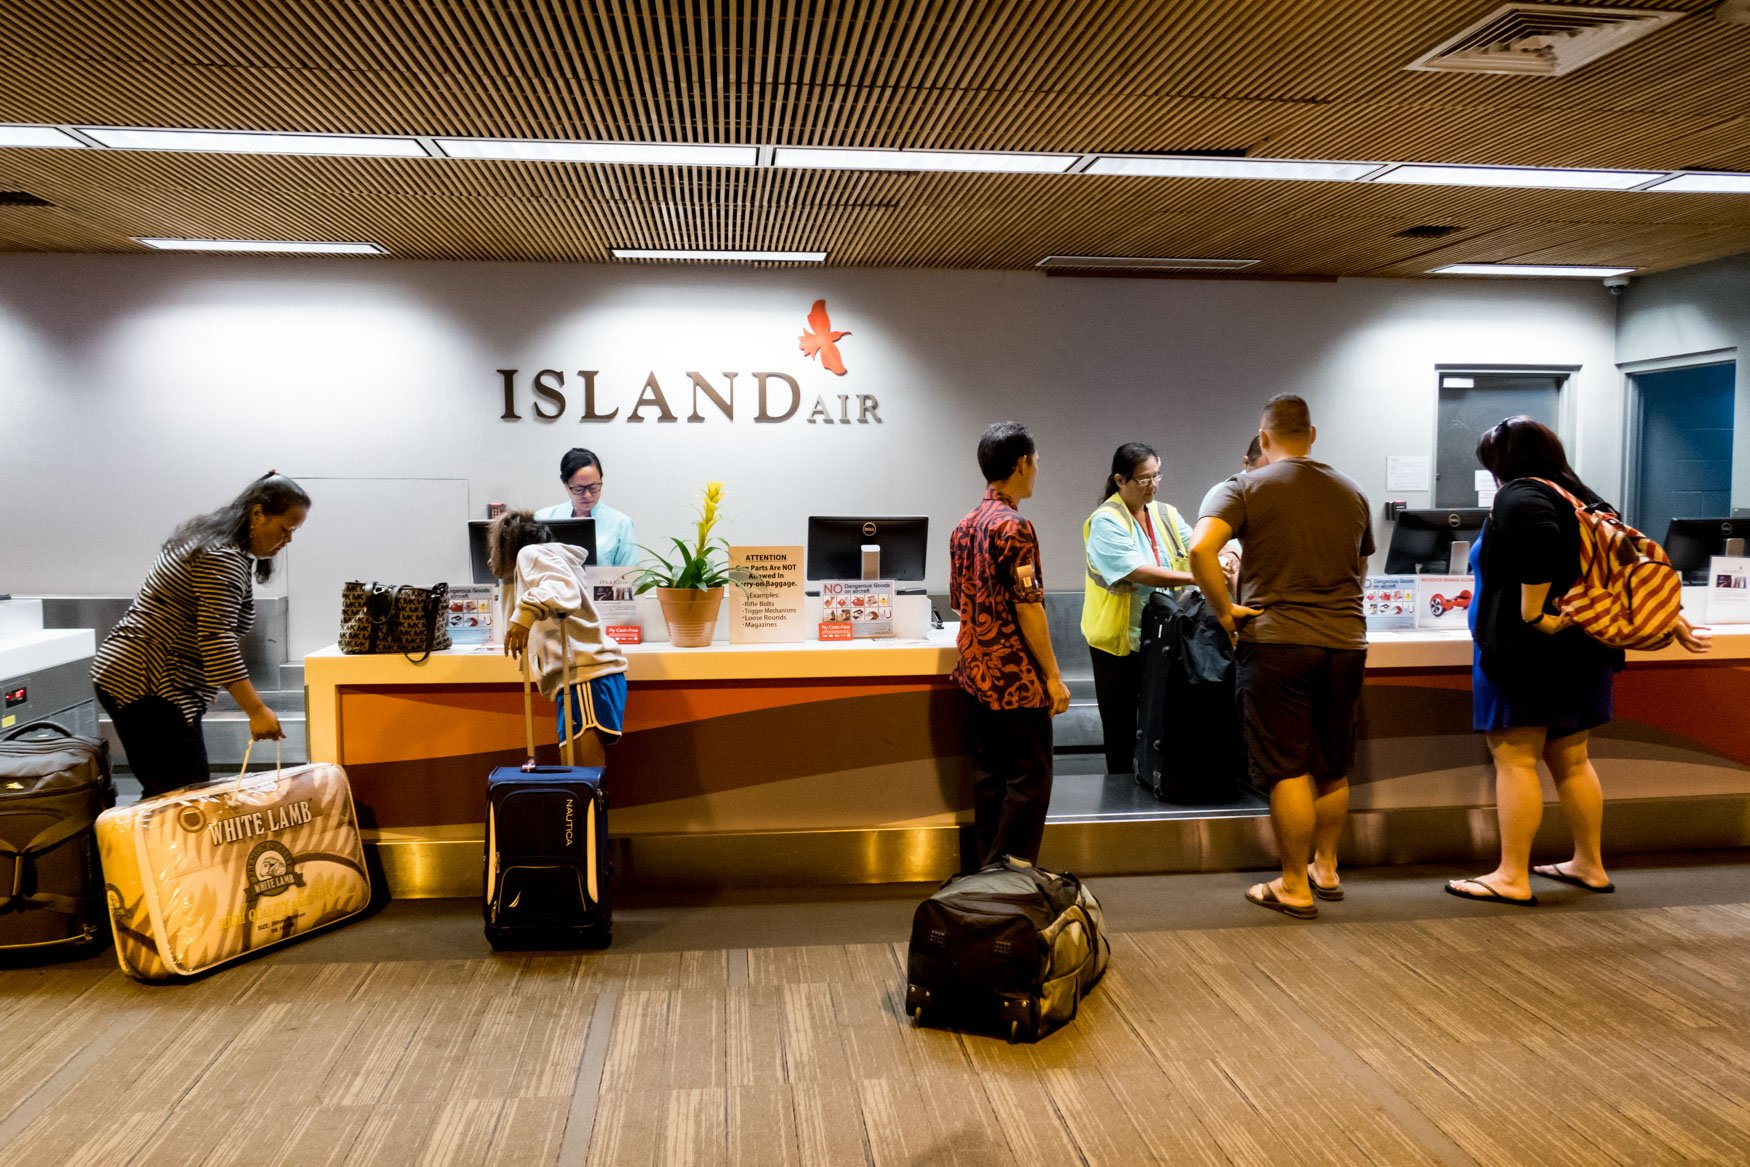 Island Air Check-In Counter